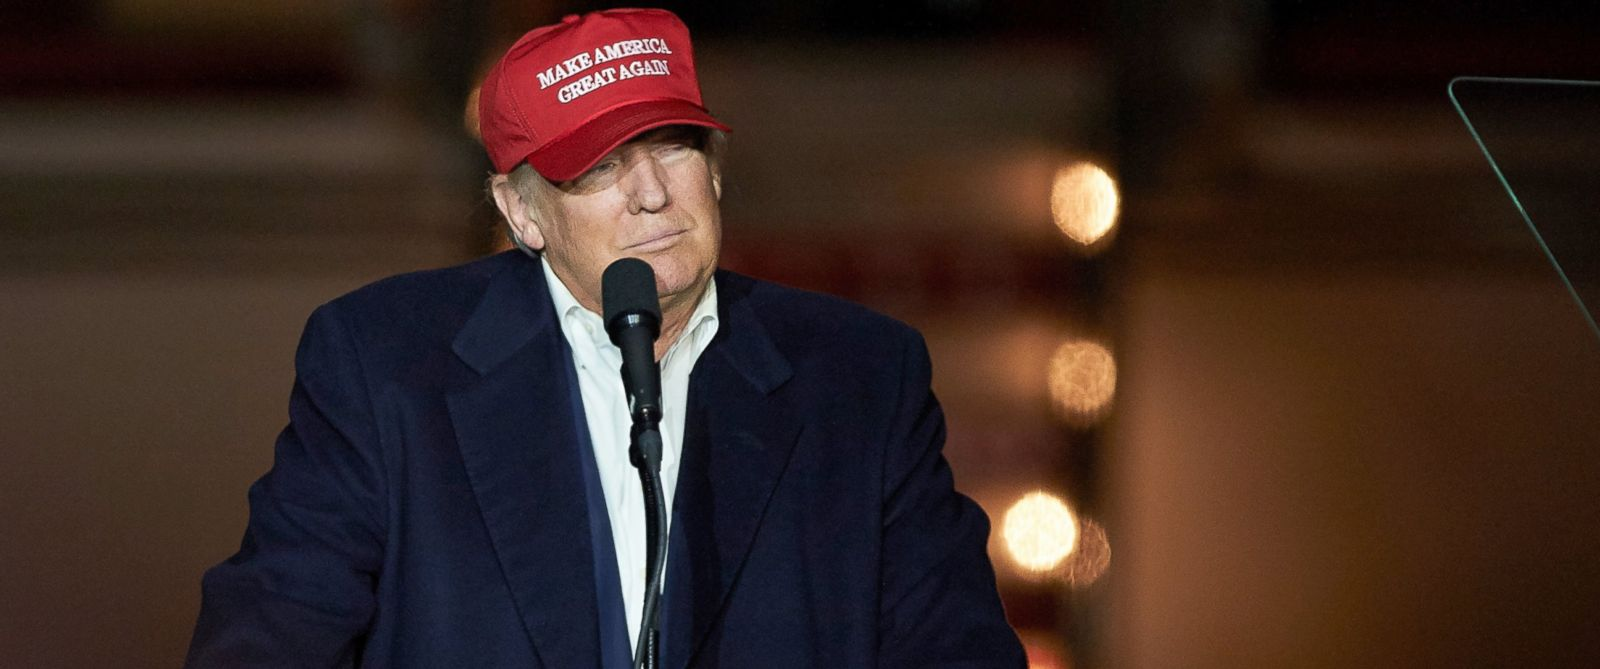 PHOTO: Republican presidential candidate Donald Trump addresses supporters during his final appearance.